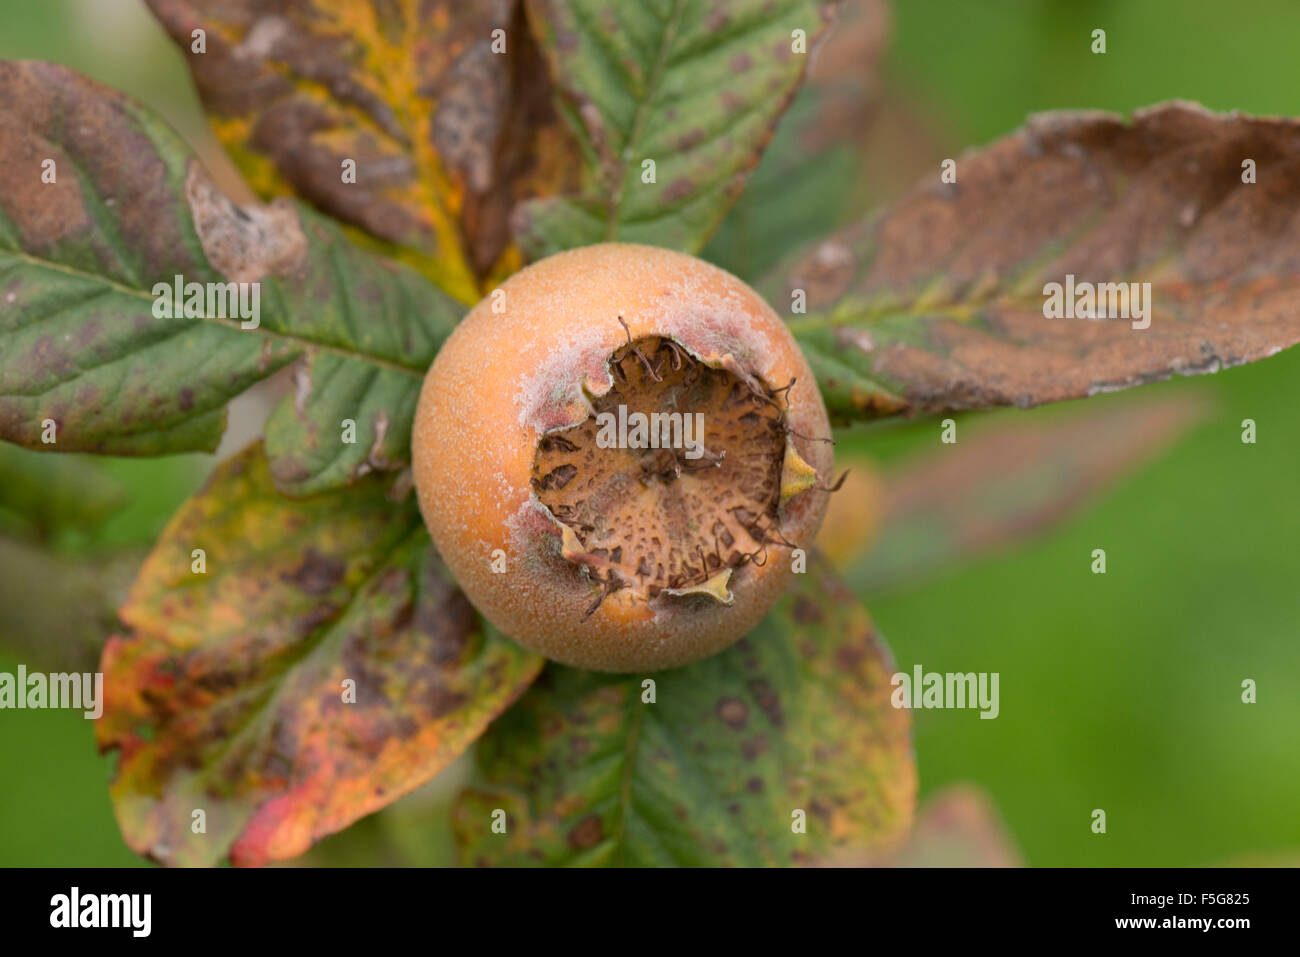 Fruit of a medlar tree with synescing autumnn leaves behind in November, a crop that originates in Roman times Stock Photo